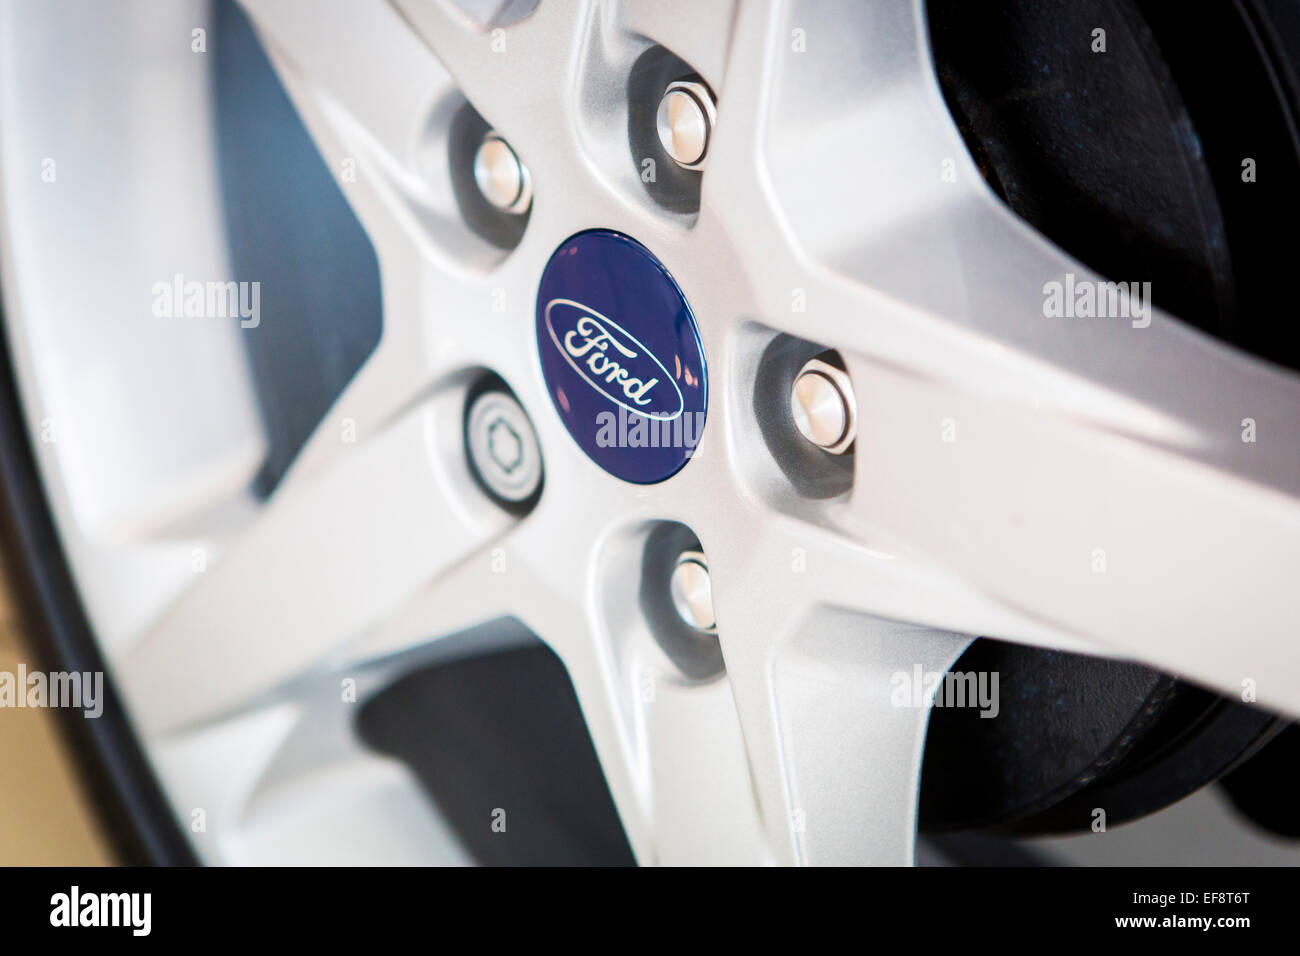 Alloy wheel of a ford car. - Stock Image